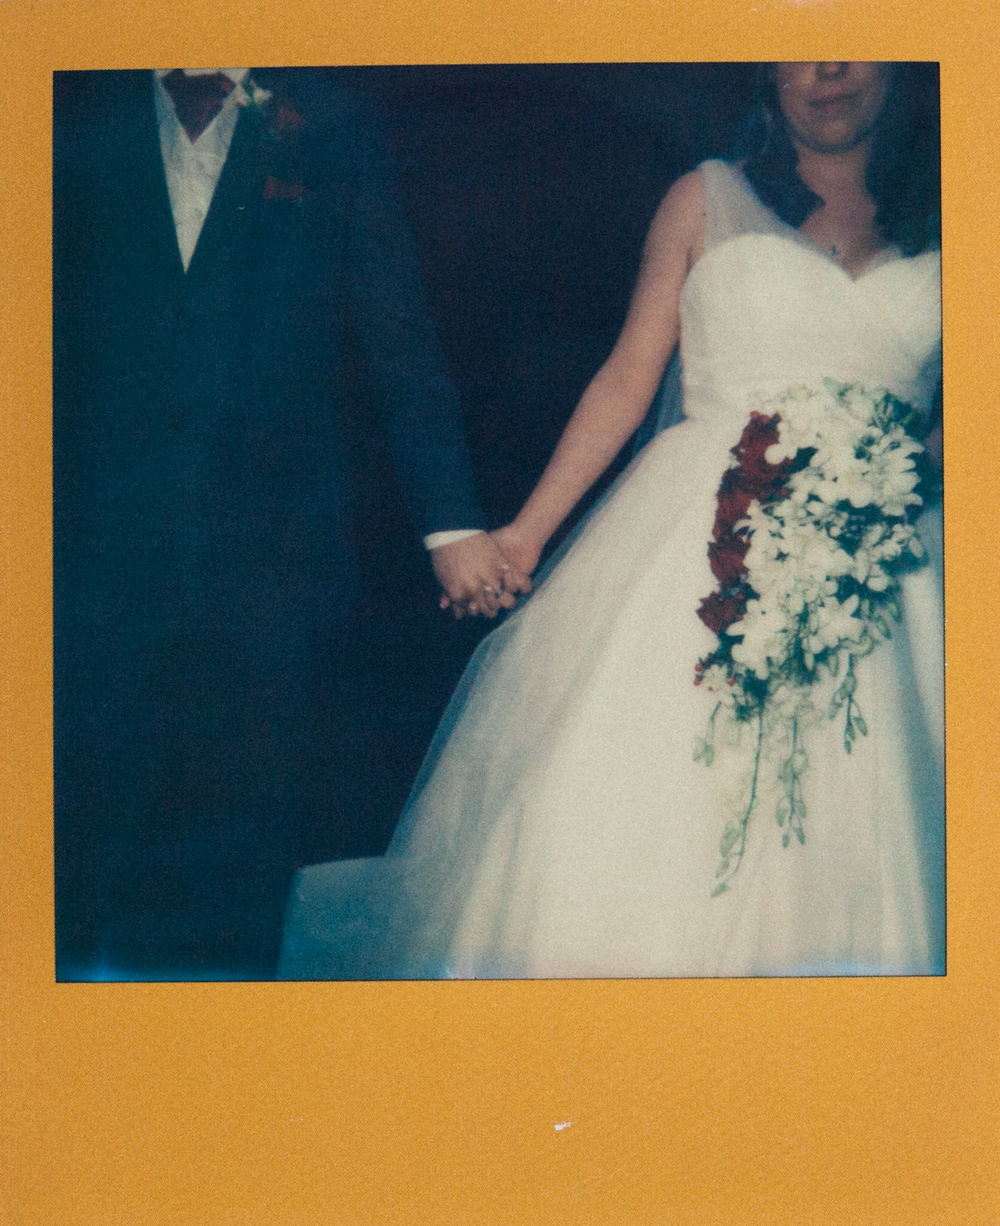 Polaroid-Wedding-Photography-102.jpg